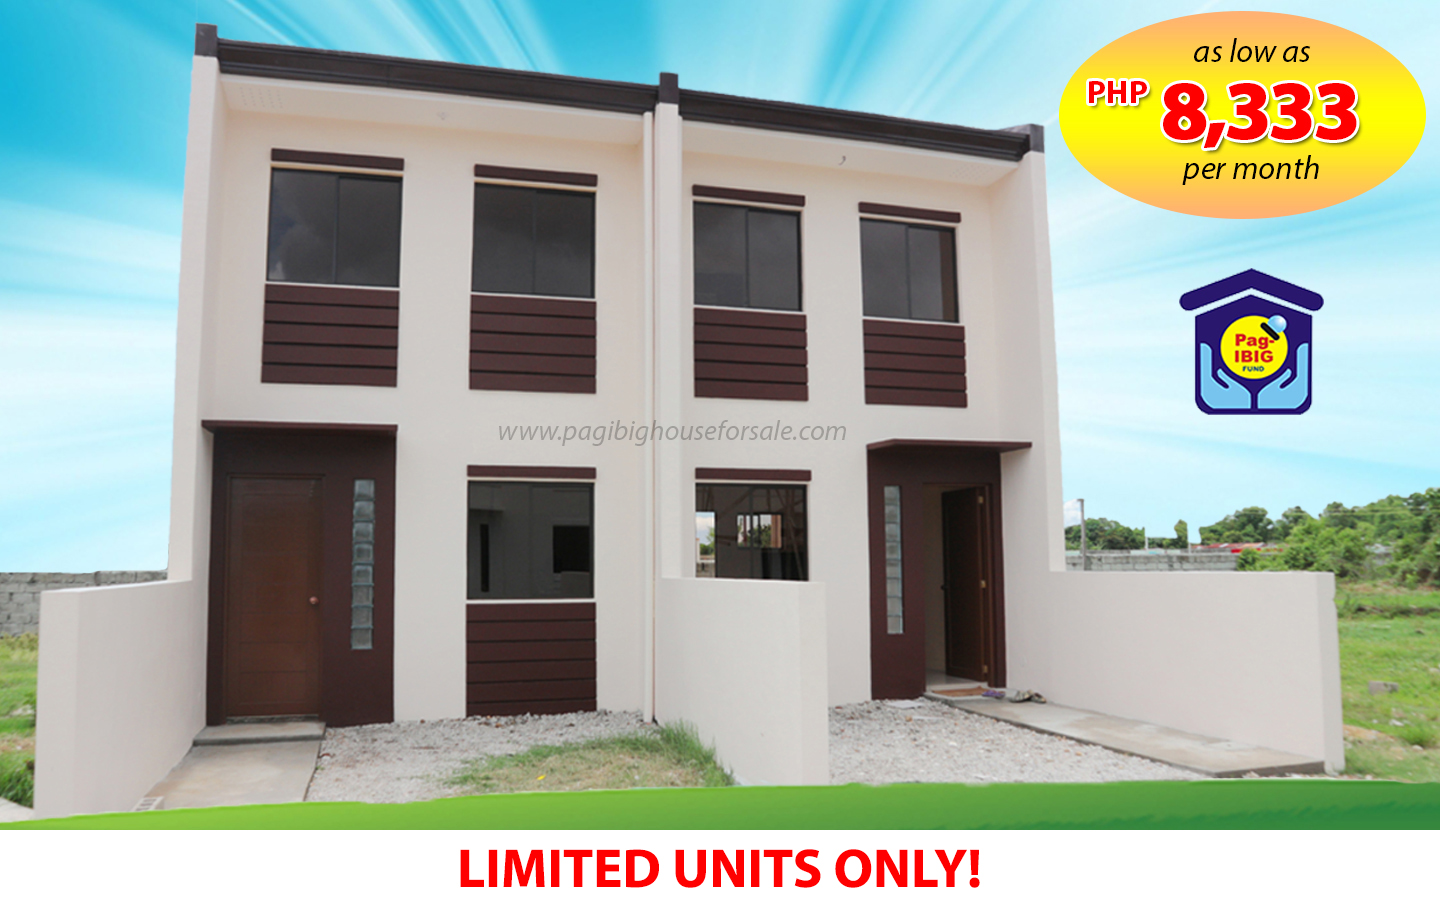 Beyond Homes – Pag-ibig Rent to Own Houses for Sale in Gen.Trias Cavite